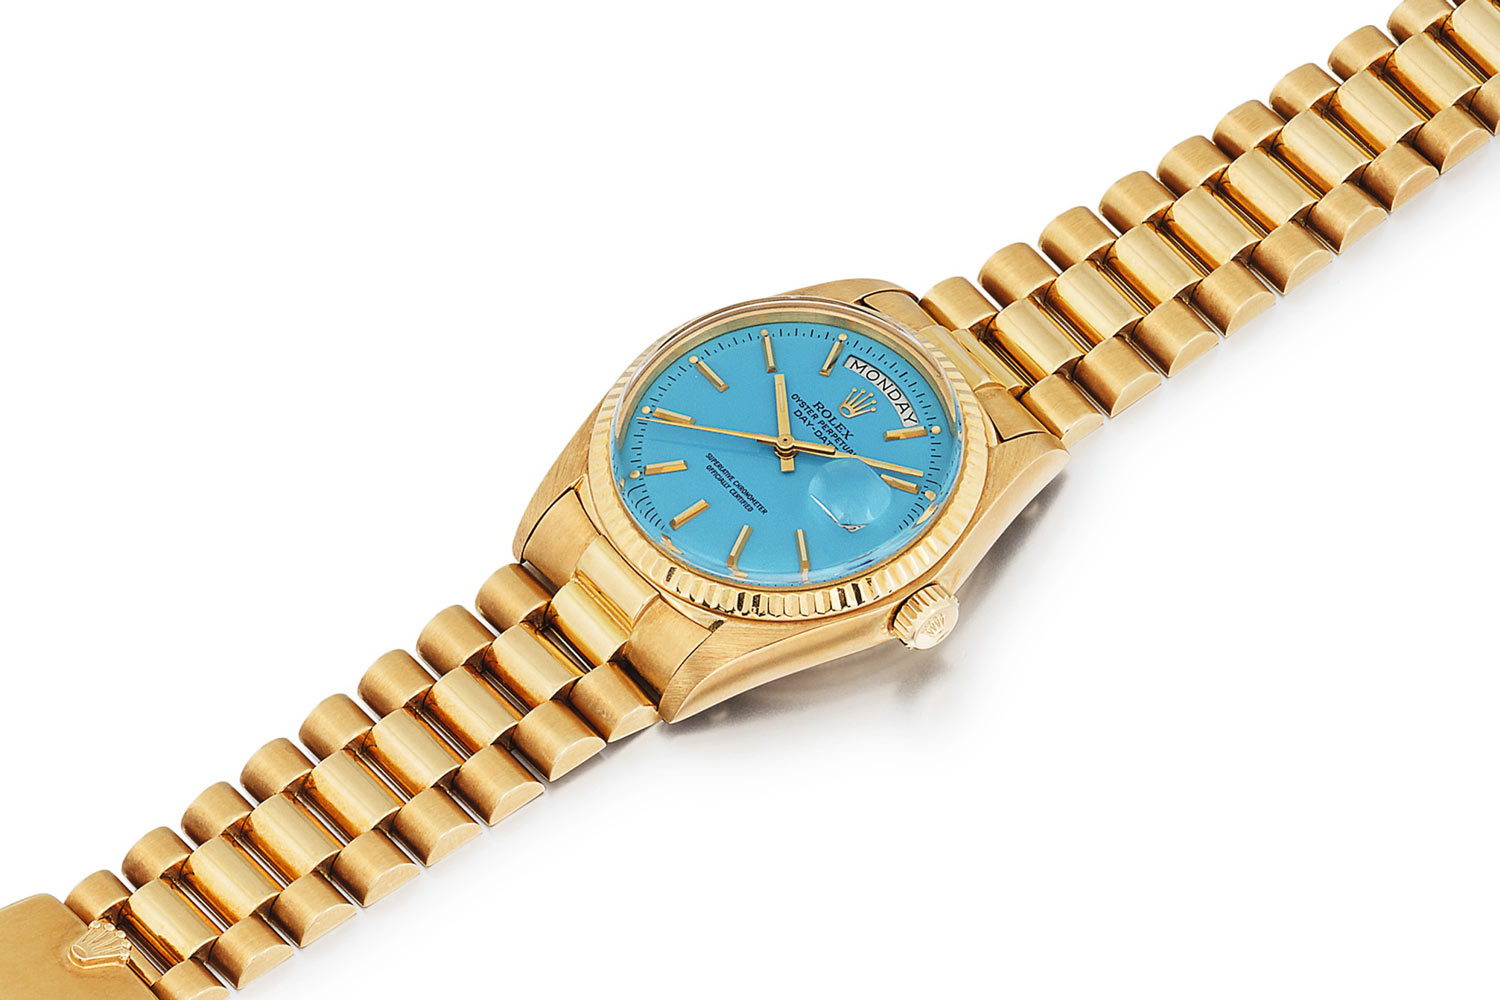 Lot 388: Rolex 'Stella' Day-Date Ref. 1803. Yellow gold wristwatch with day, date and blue Stella dial, circa 1975